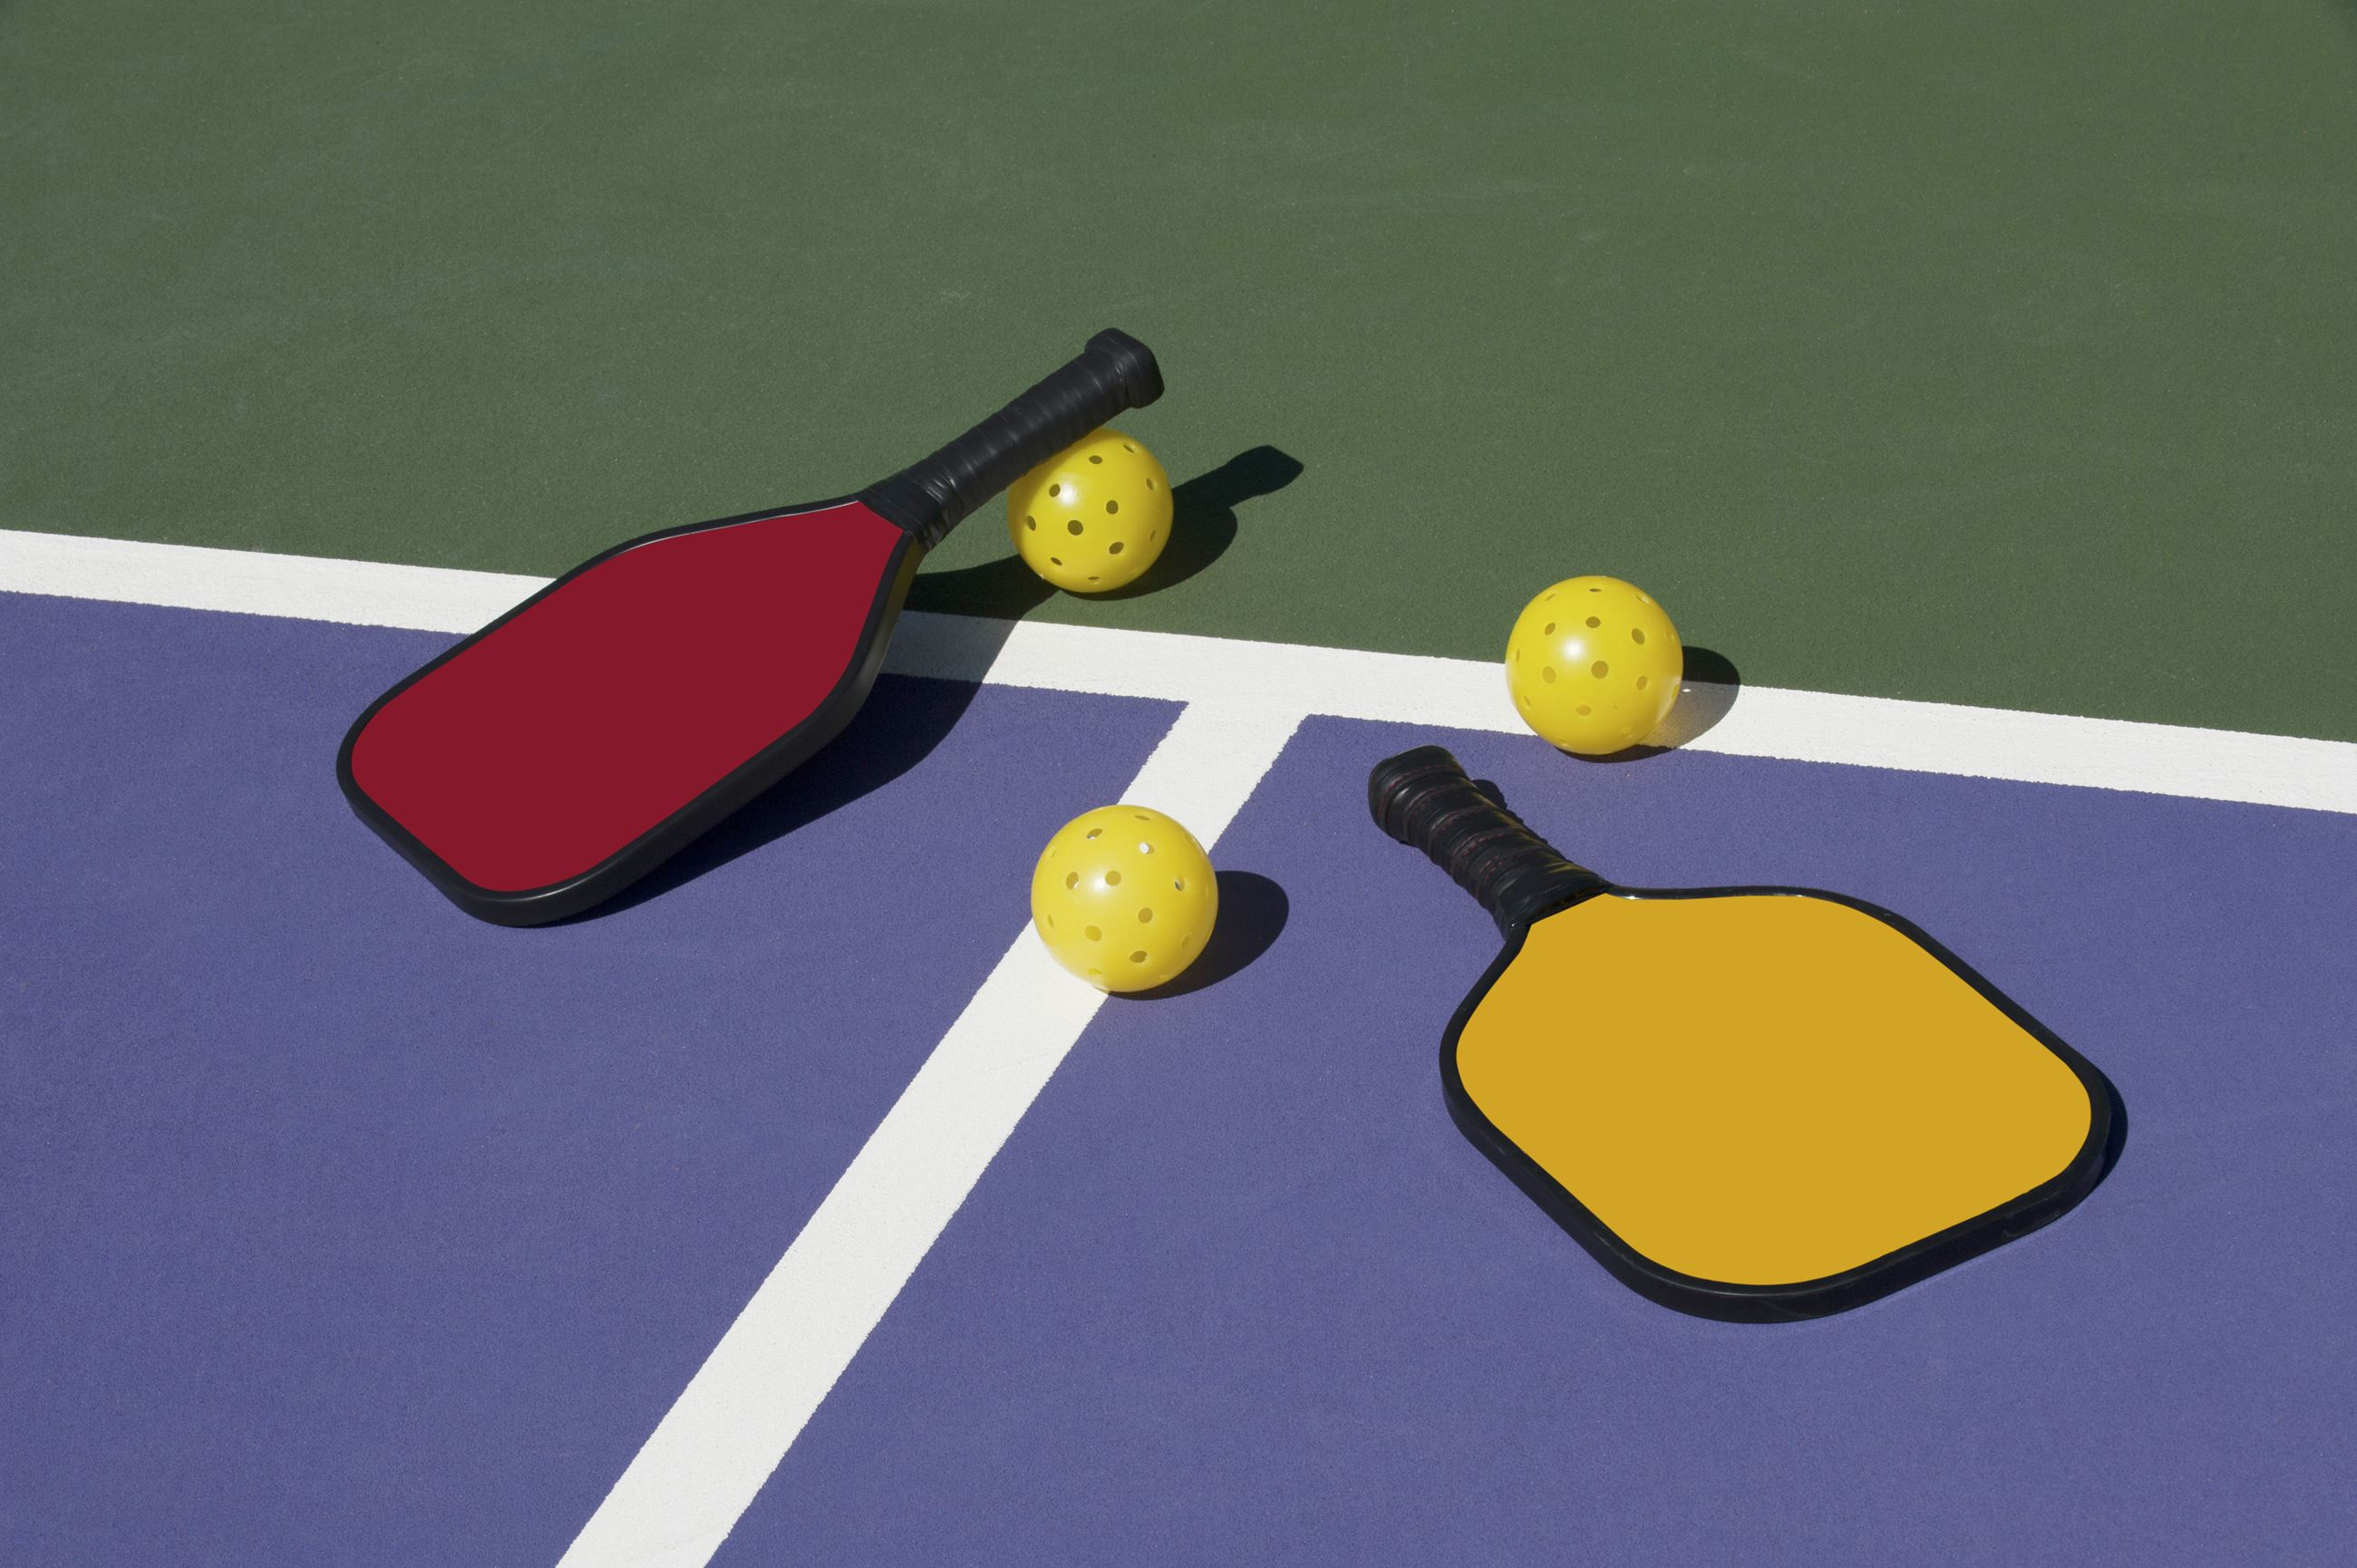 Pickleball balls and raquets laying on court